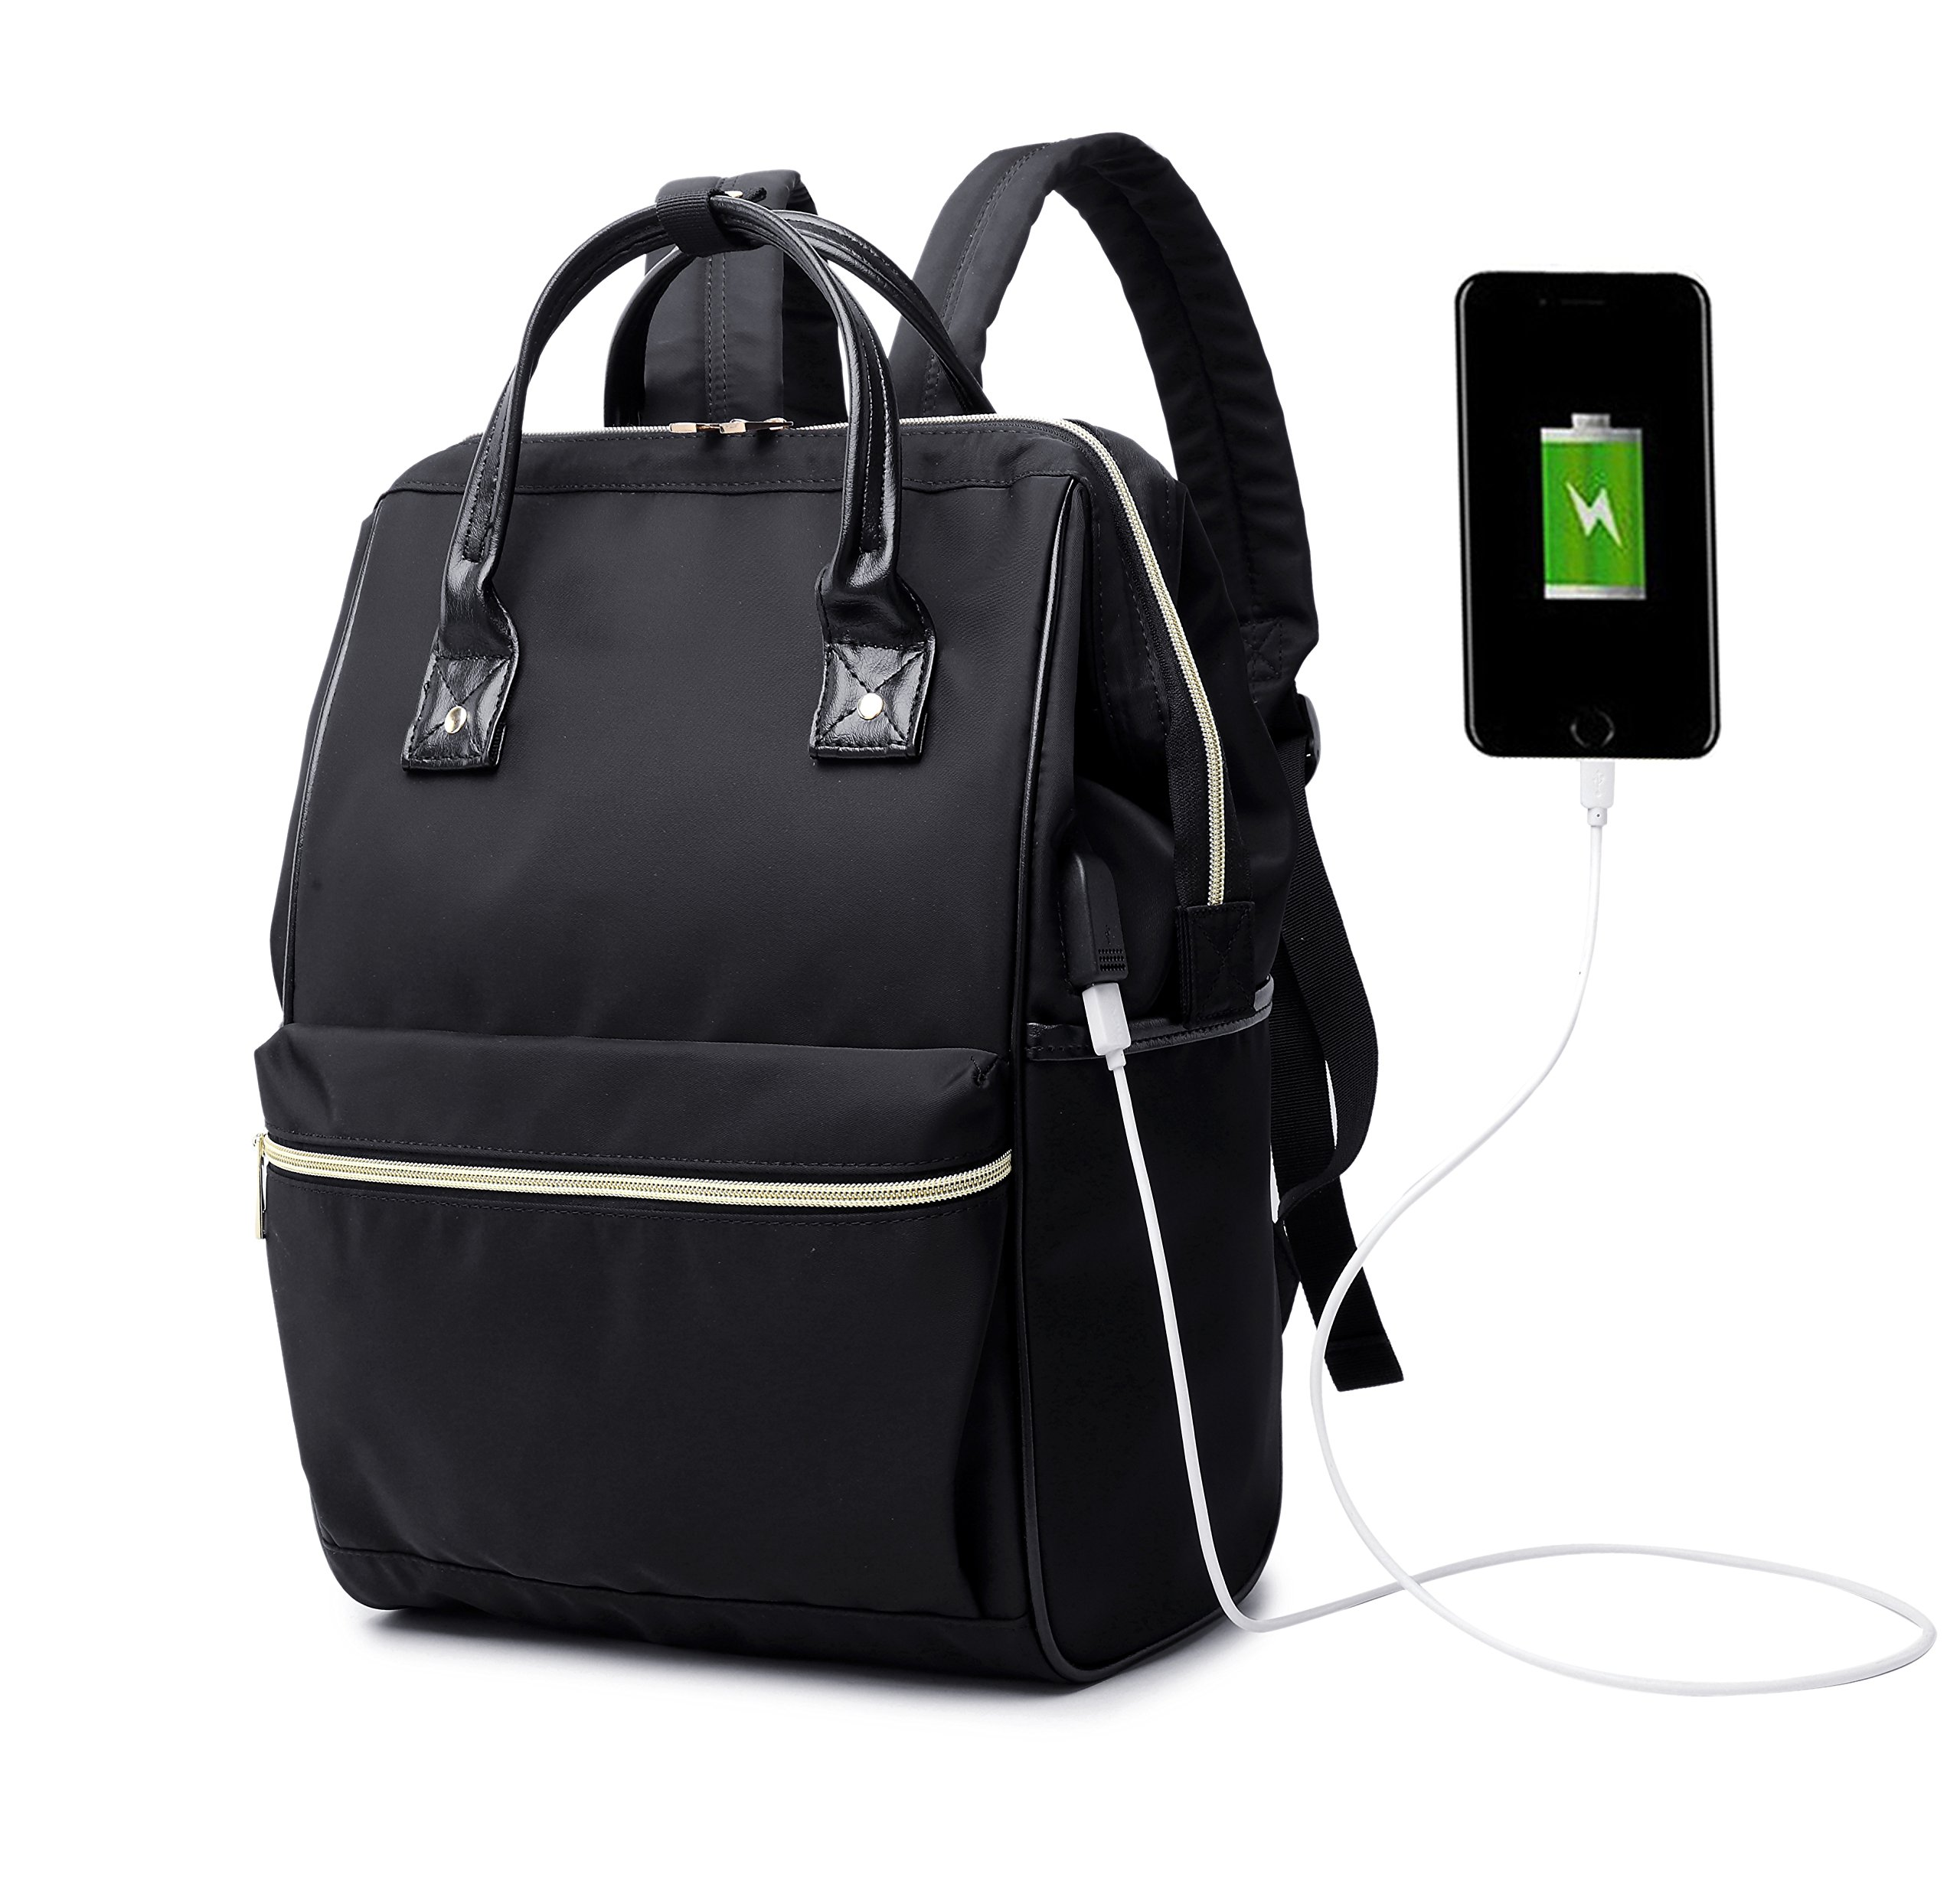 Womens USB Laptop Backpack 15.6 inch Laotop Bag Backpack Purse Daypack for Work College School Travel Black Ship from US